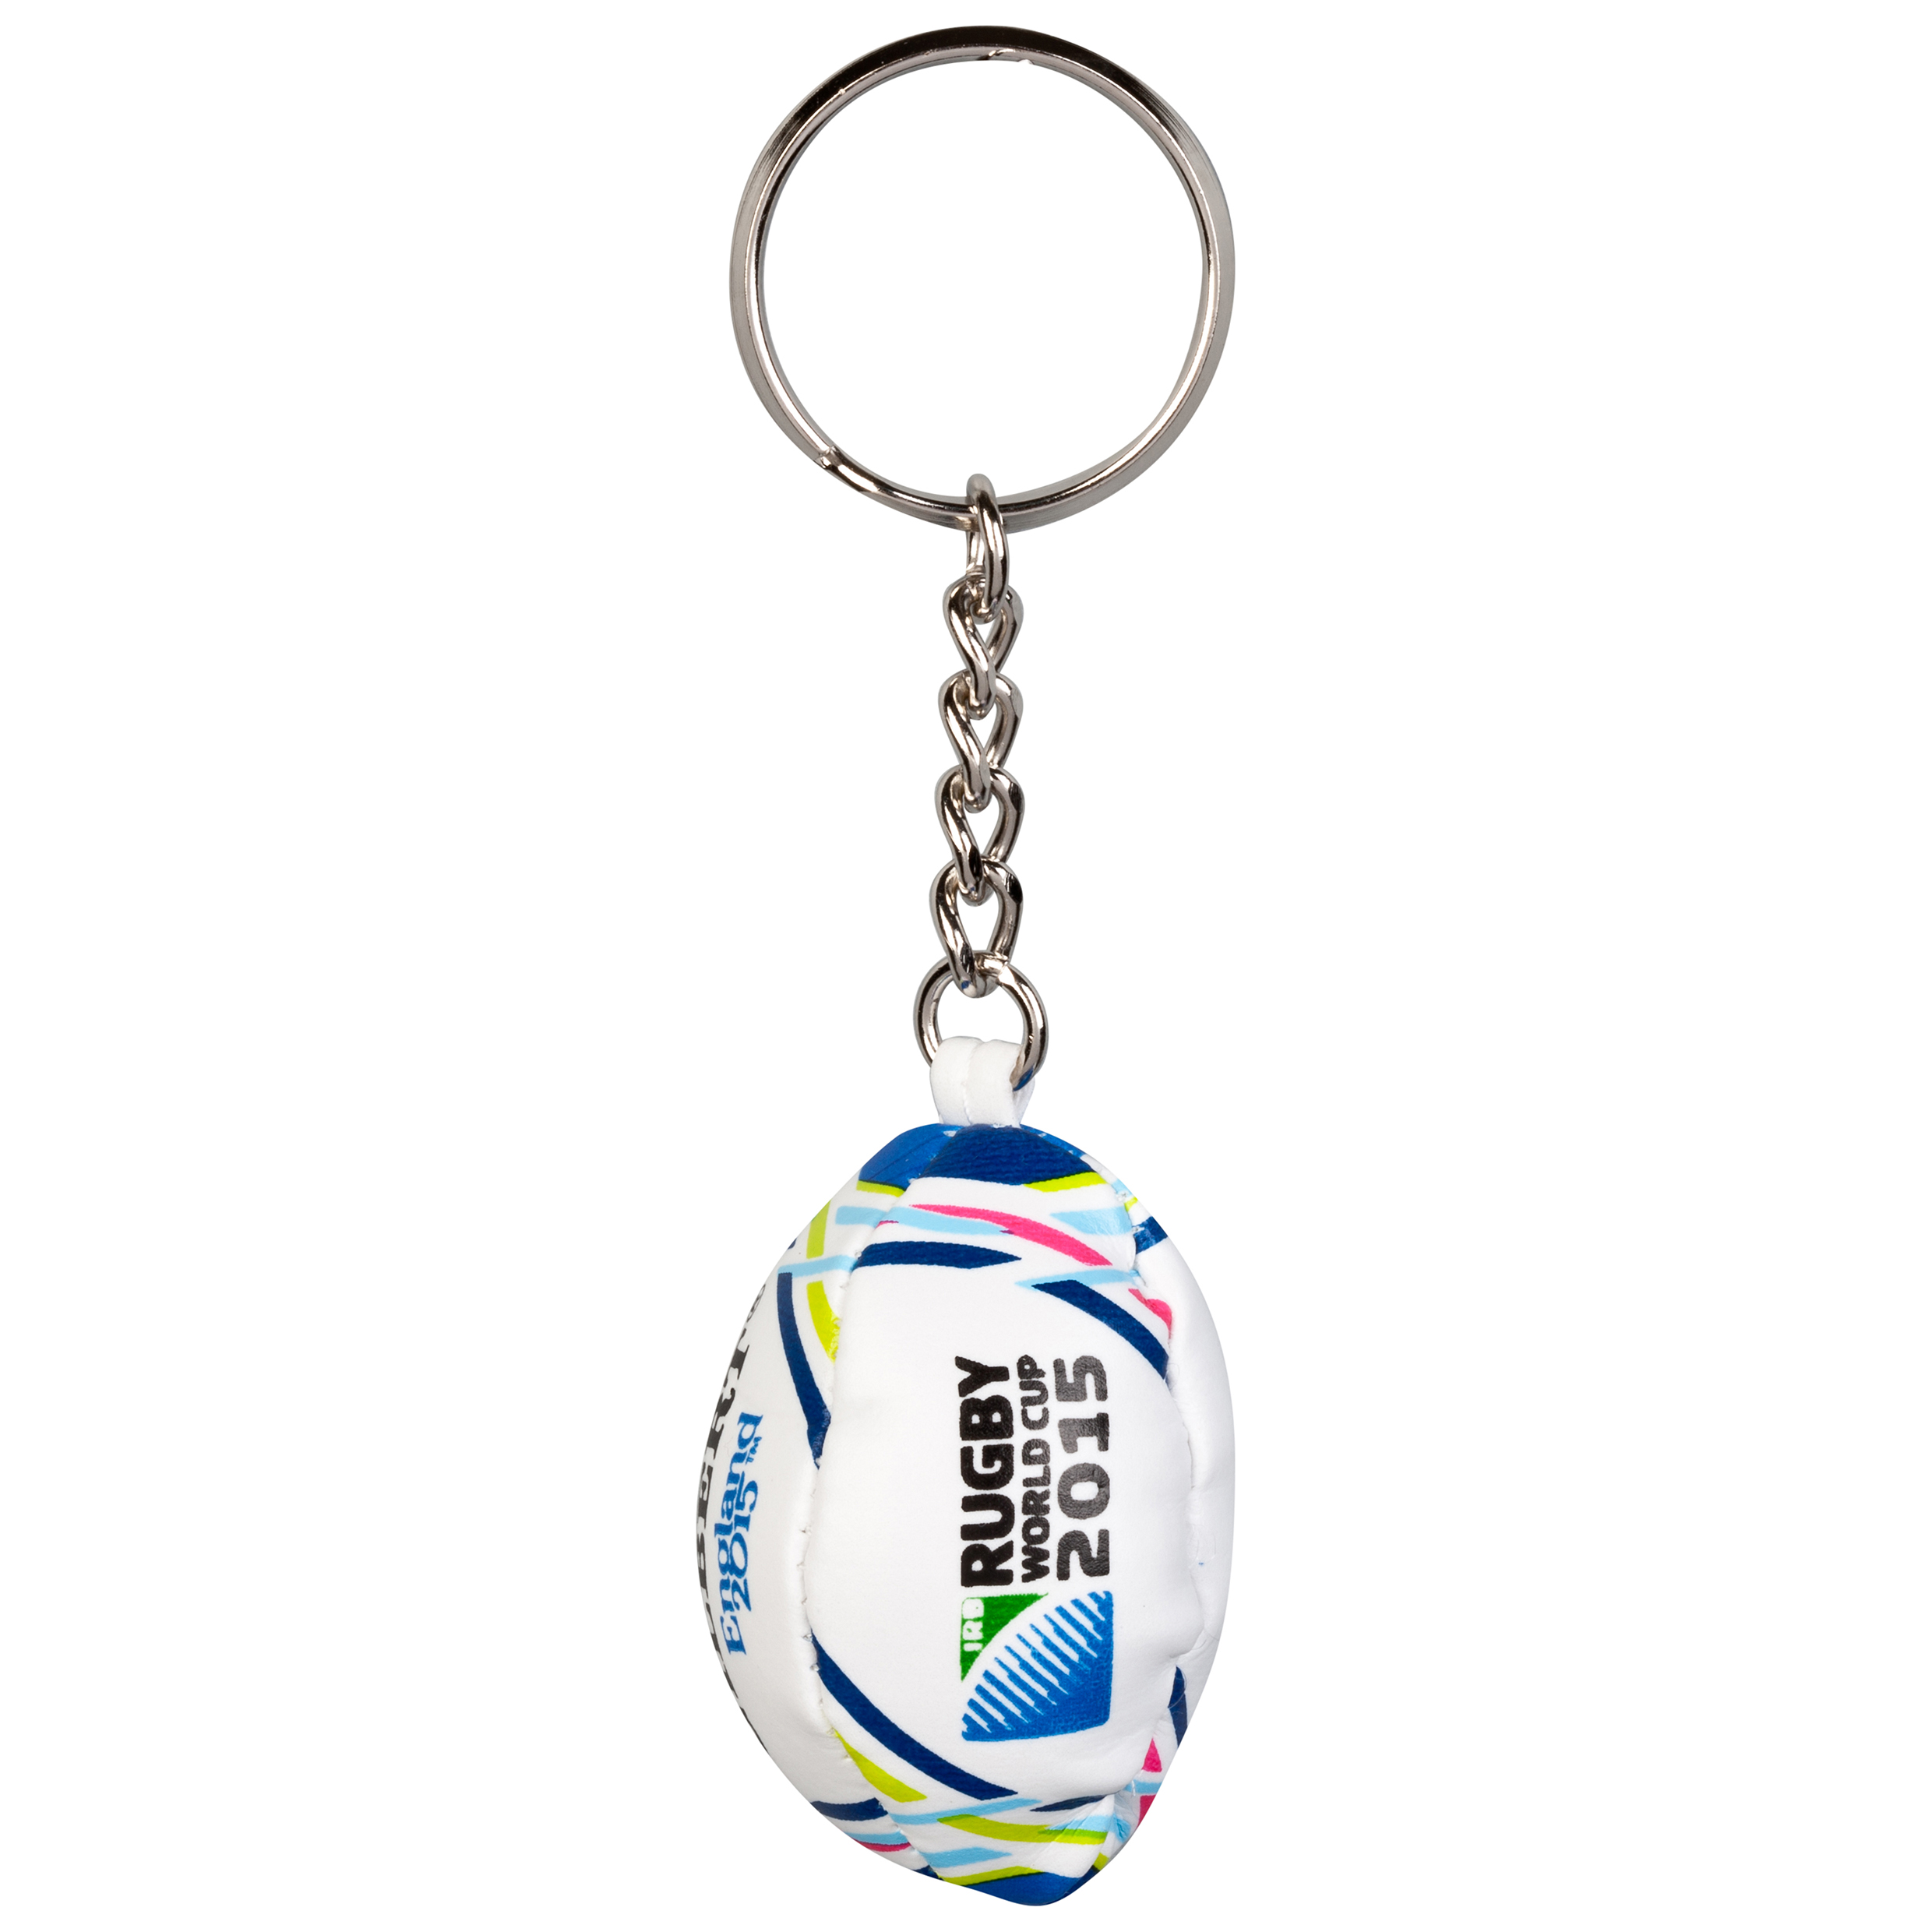 Gilbert Rugby World Cup 2015 Replica Ball Key Ring White